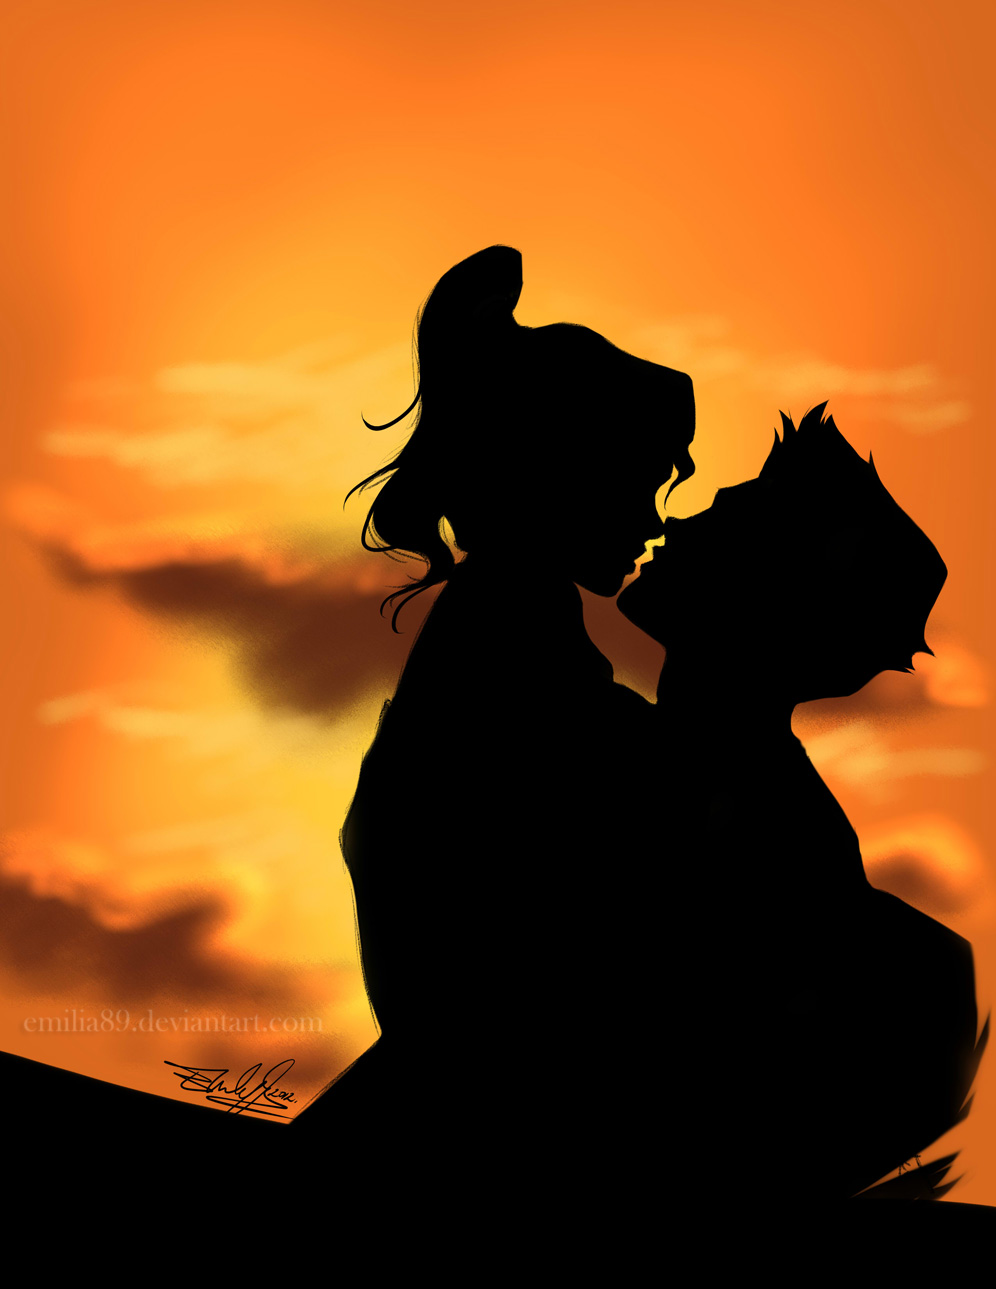 Makorra Week :: Ever After by Emilia89